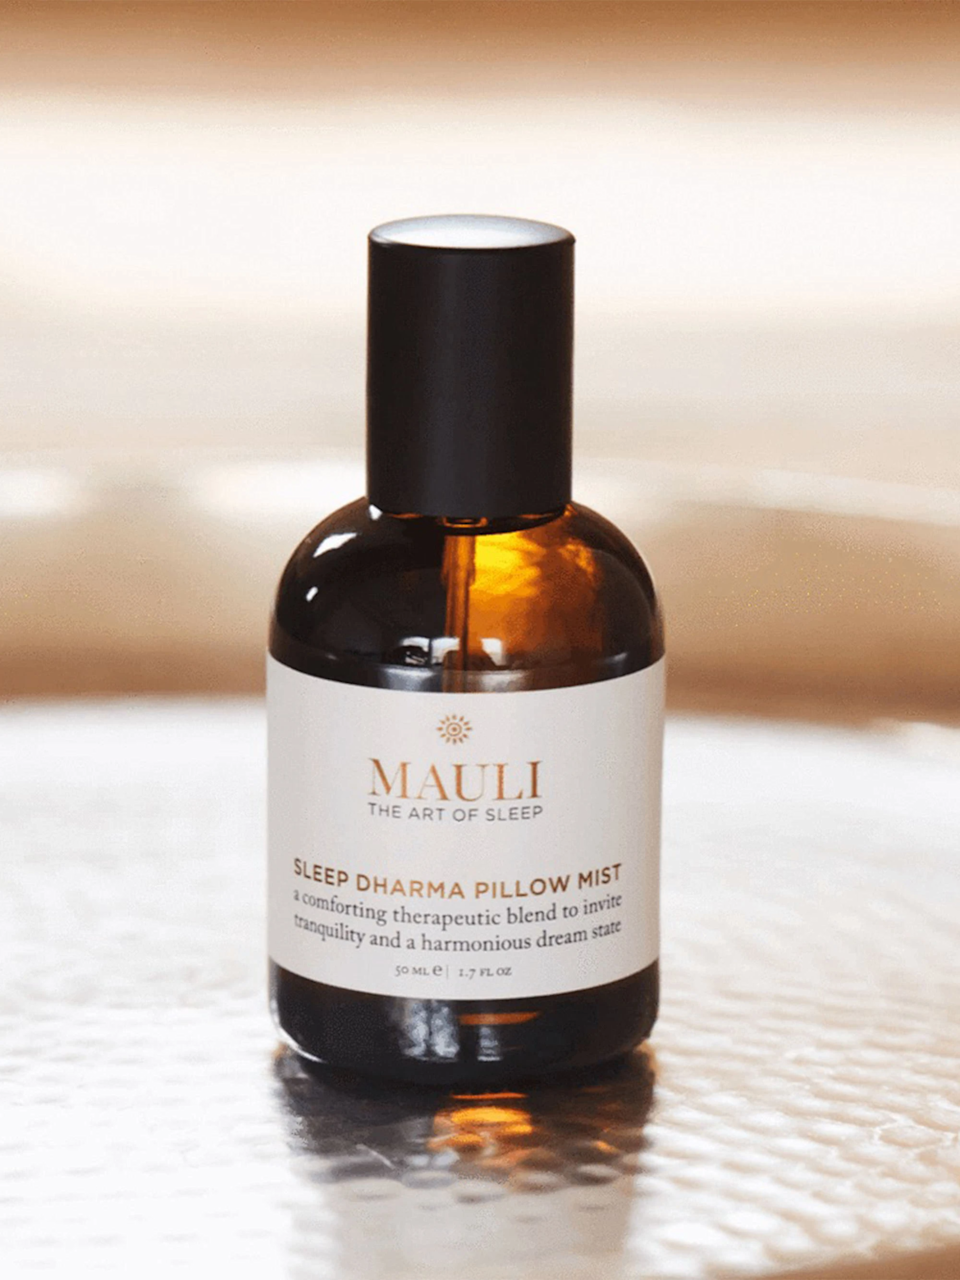 """<h3><strong>Sleep Dharma</strong> Pillow Mist</h3><br>If CBD sleep gummies or weighted blankets aren't your thing, try out this botanical sleep mist to help lull you to sleep with its comforting fragrance of vetiver, chamomile, and clary sage. <br><br><strong>Mauli Rituals</strong> Sleep Dharma Pillow Mist, $, available at <a href=""""https://go.skimresources.com/?id=30283X879131&url=https%3A%2F%2Fstandarddose.com%2Fcollections%2Fnew-arrivals%2Fproducts%2Fmauli-rituals-sleep-dharma-pillow-mist"""" rel=""""nofollow noopener"""" target=""""_blank"""" data-ylk=""""slk:Standard Dose"""" class=""""link rapid-noclick-resp"""">Standard Dose</a>"""